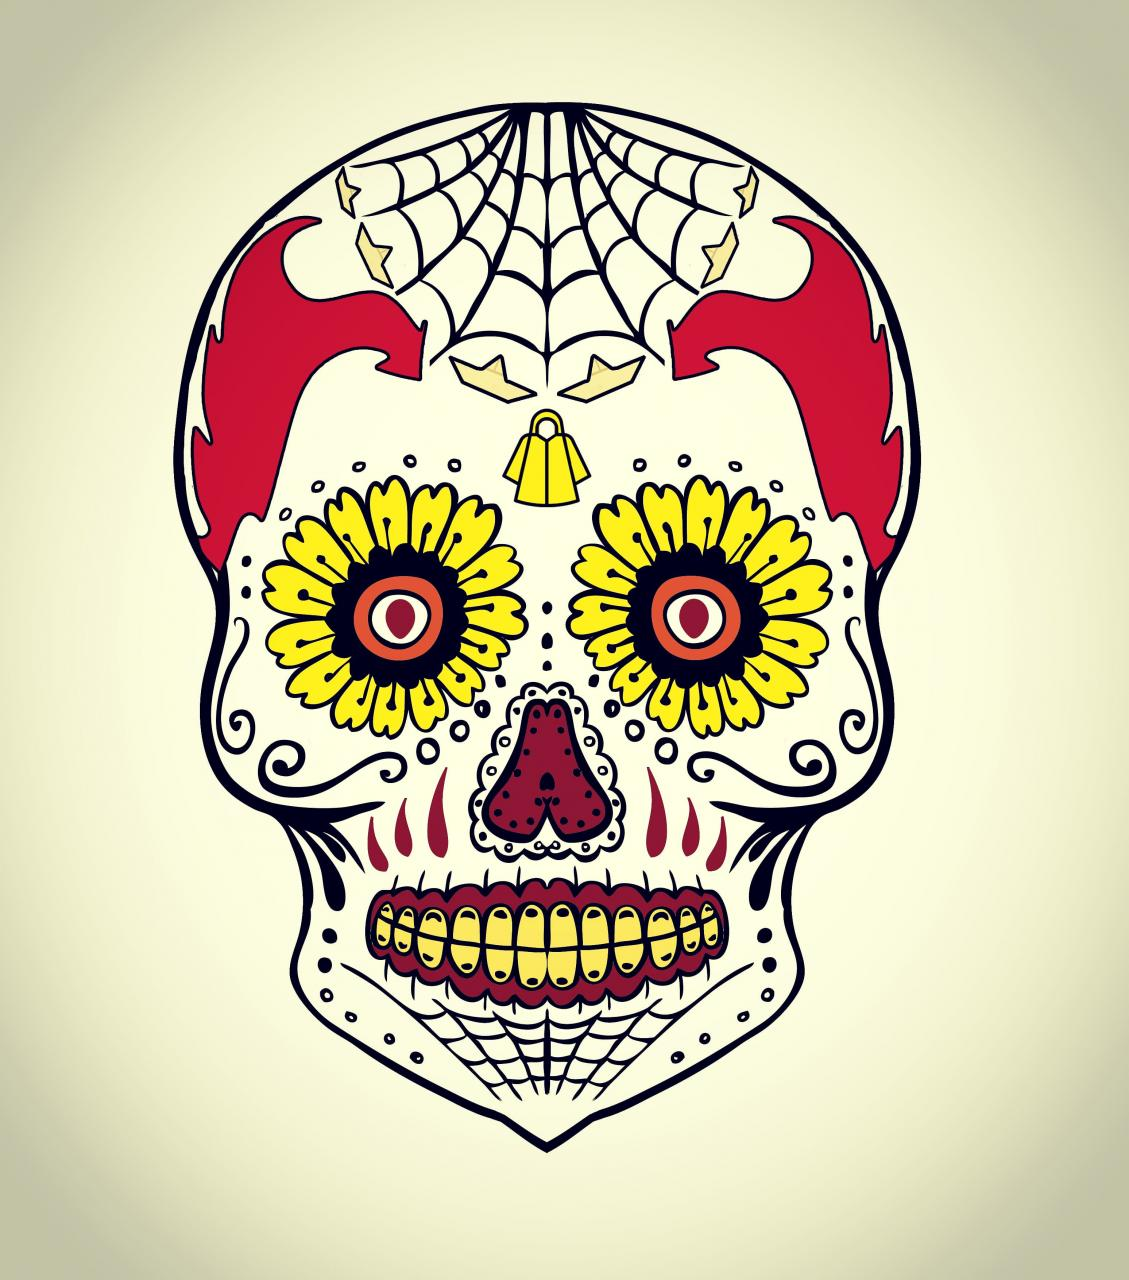 Finally finished my other Pennywise design - Dia de los Muertos!